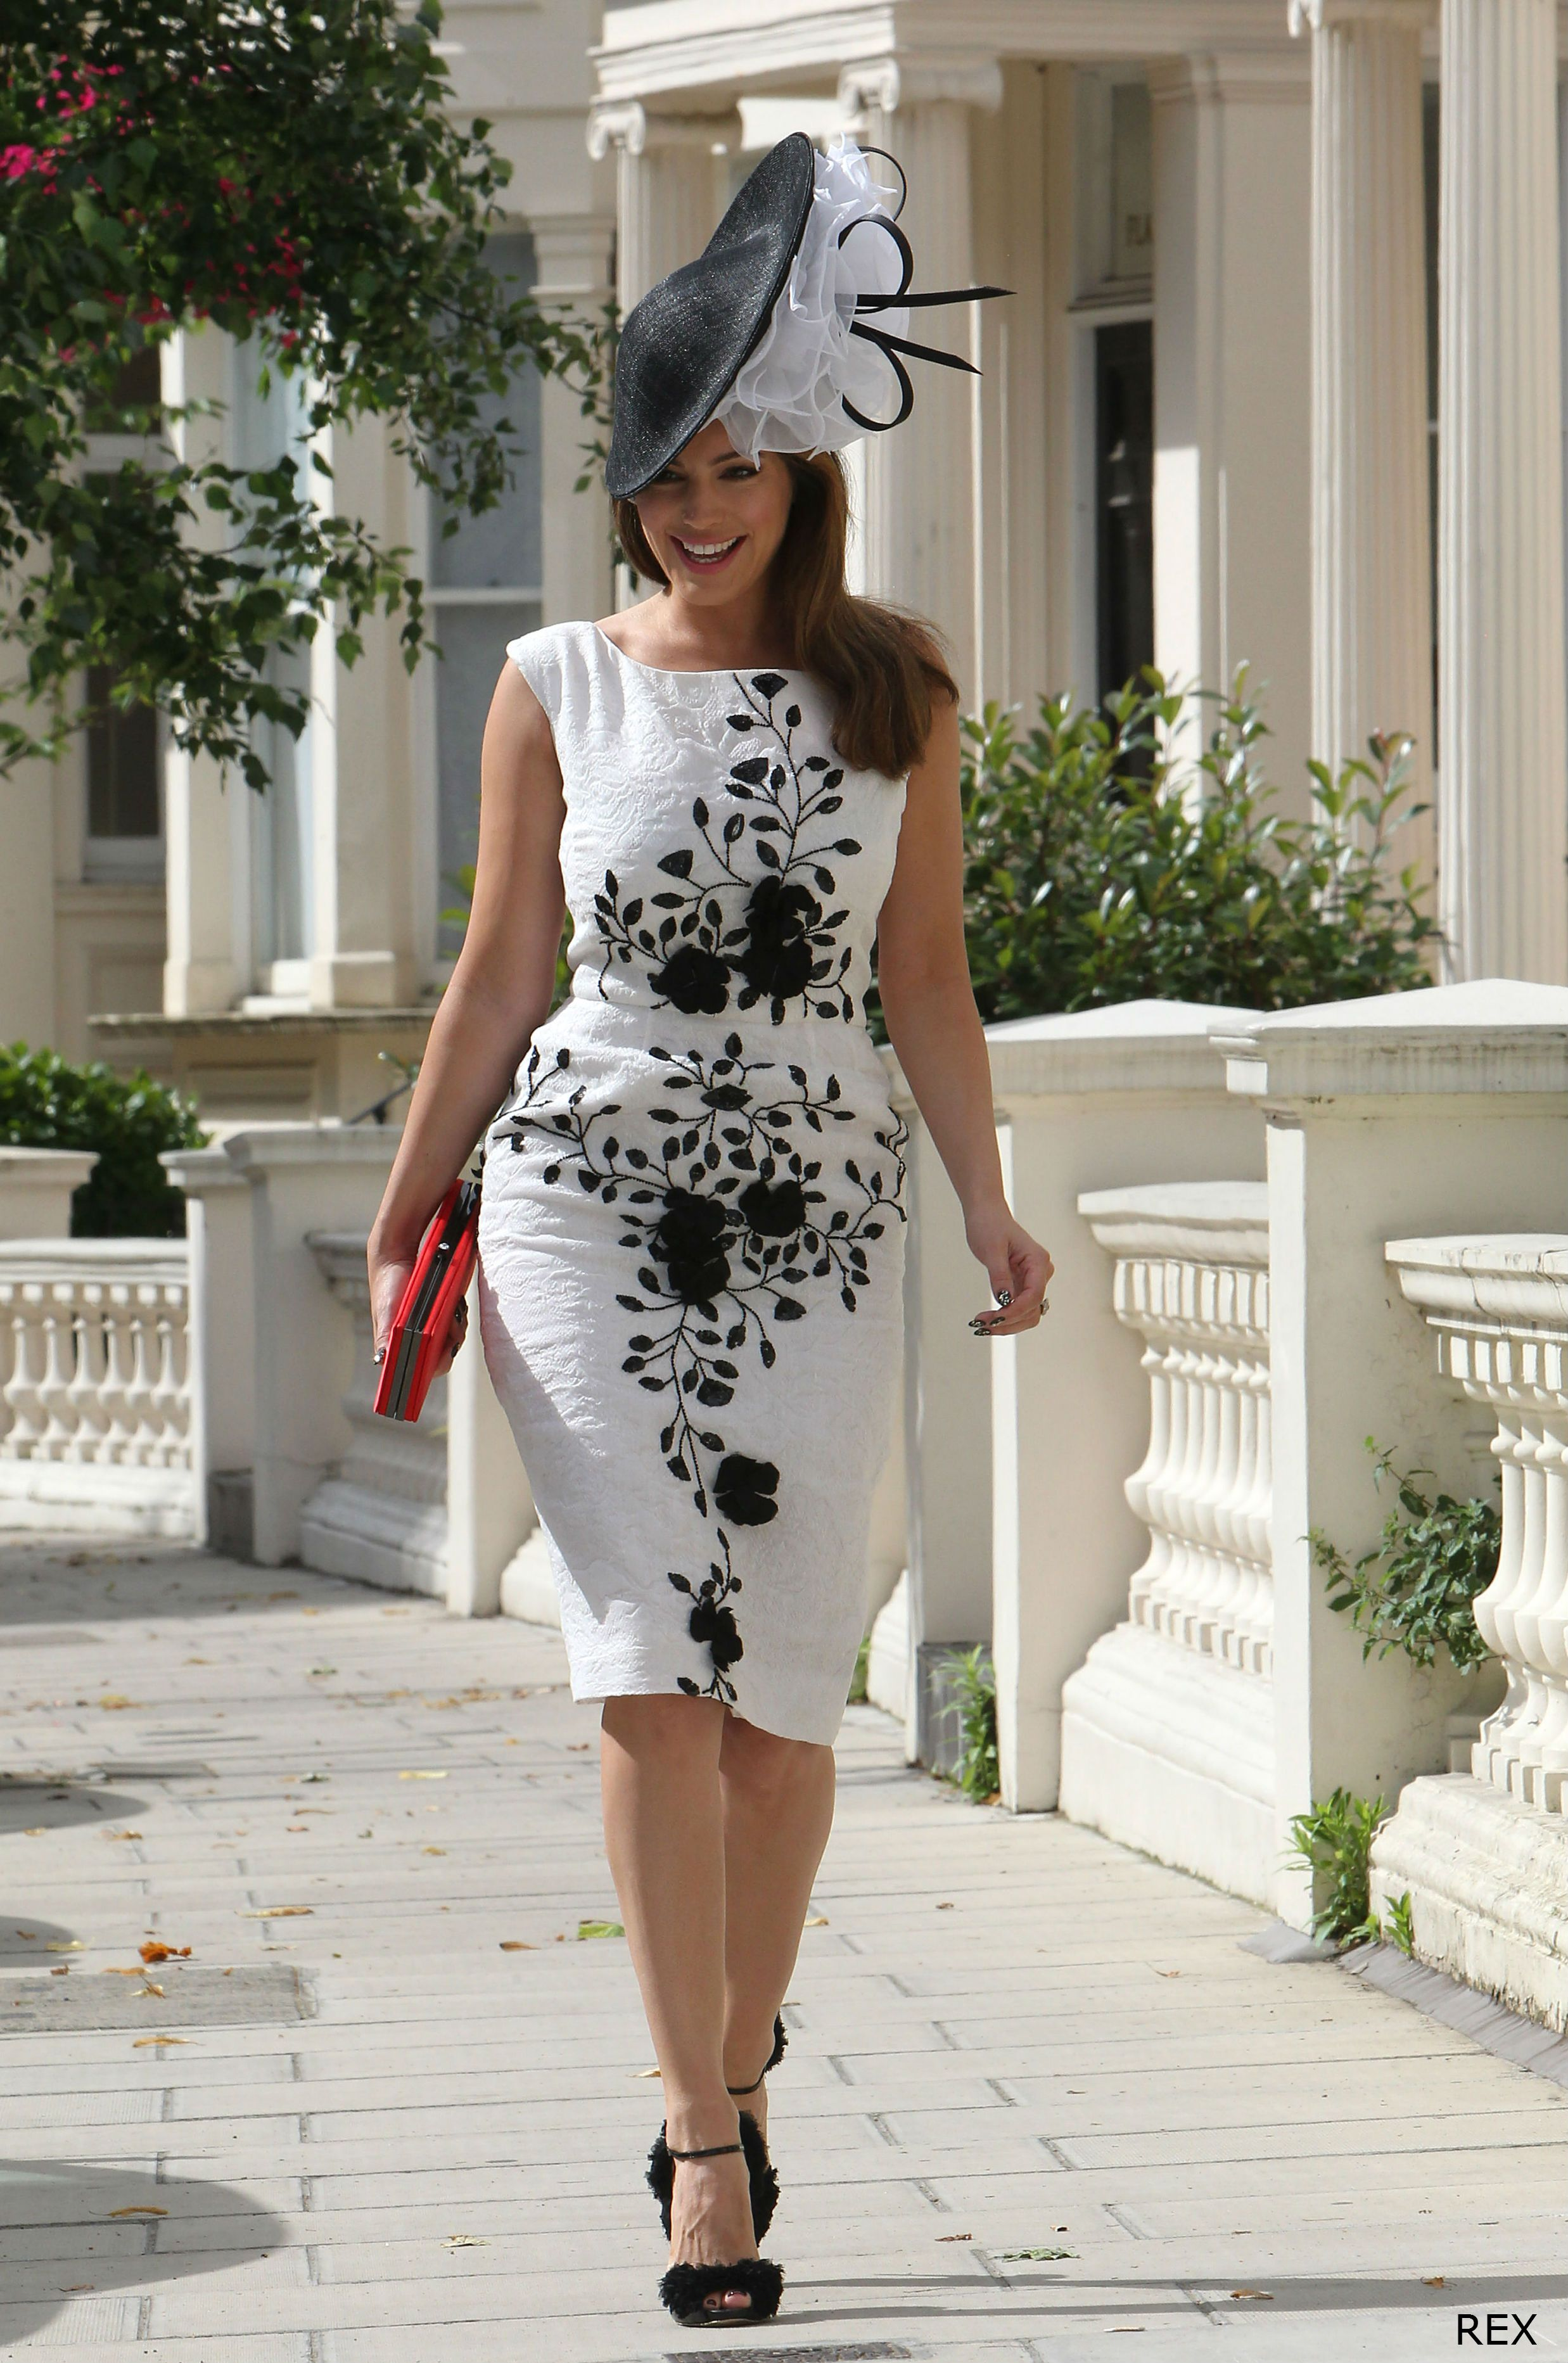 Kelly Brook is ravishing in race day dress | Gold Cup | Pinterest ...